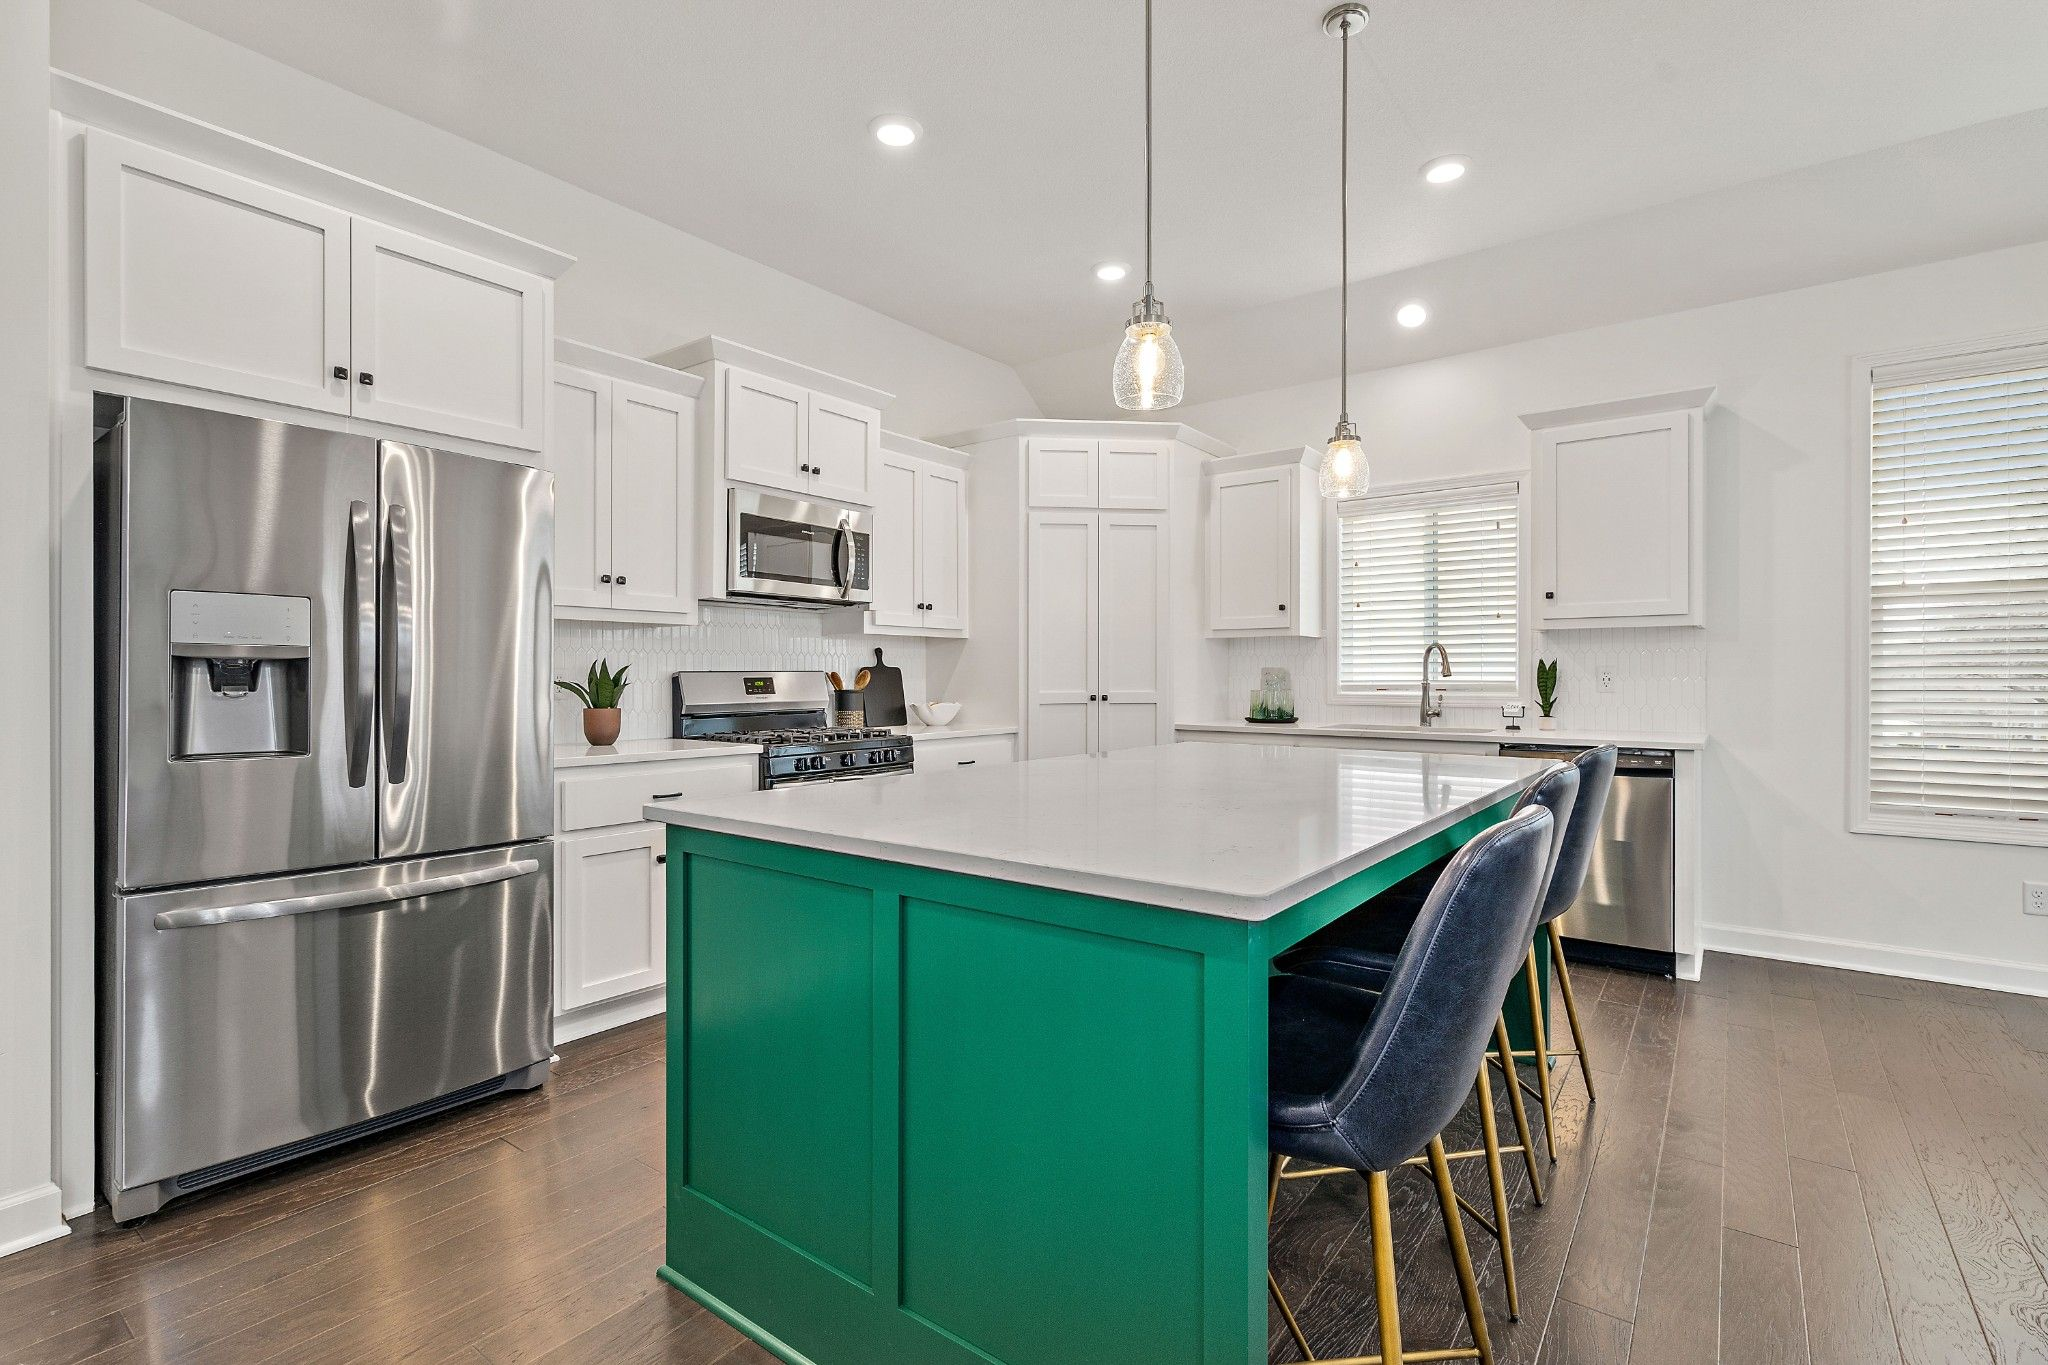 Kitchen featured in the Carbondale By Summit Homes in Kansas City, MO